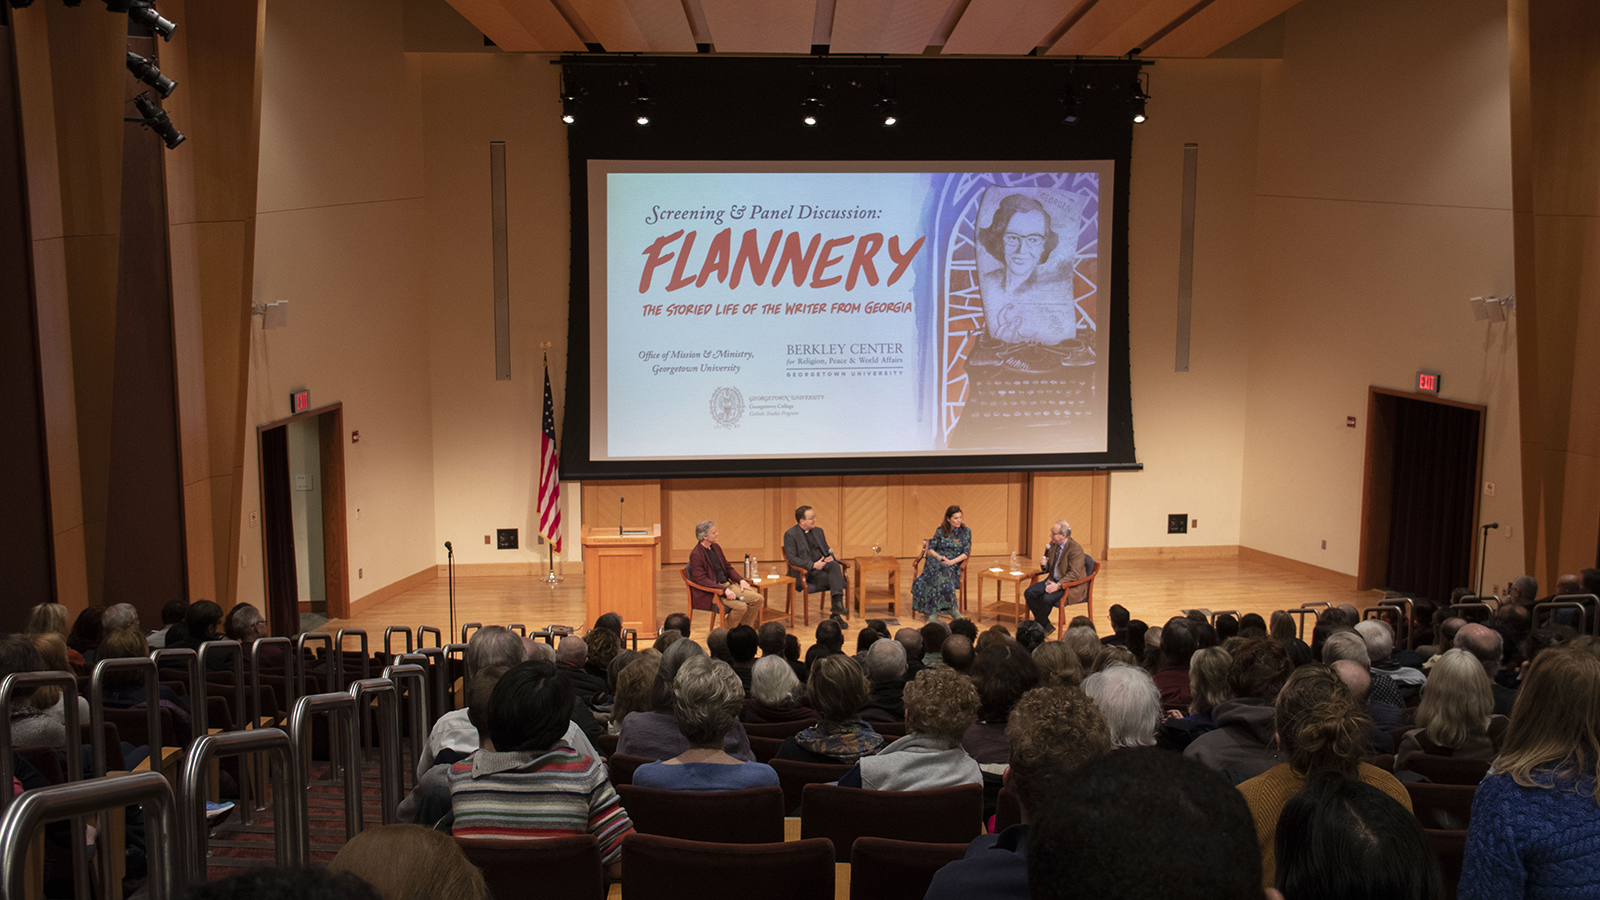 Rev. Mark Bosco, S.J., Elizabeth Coffman, Paul Elie, and Ted Hardin discuss the documentary about Flannery O'Connor.